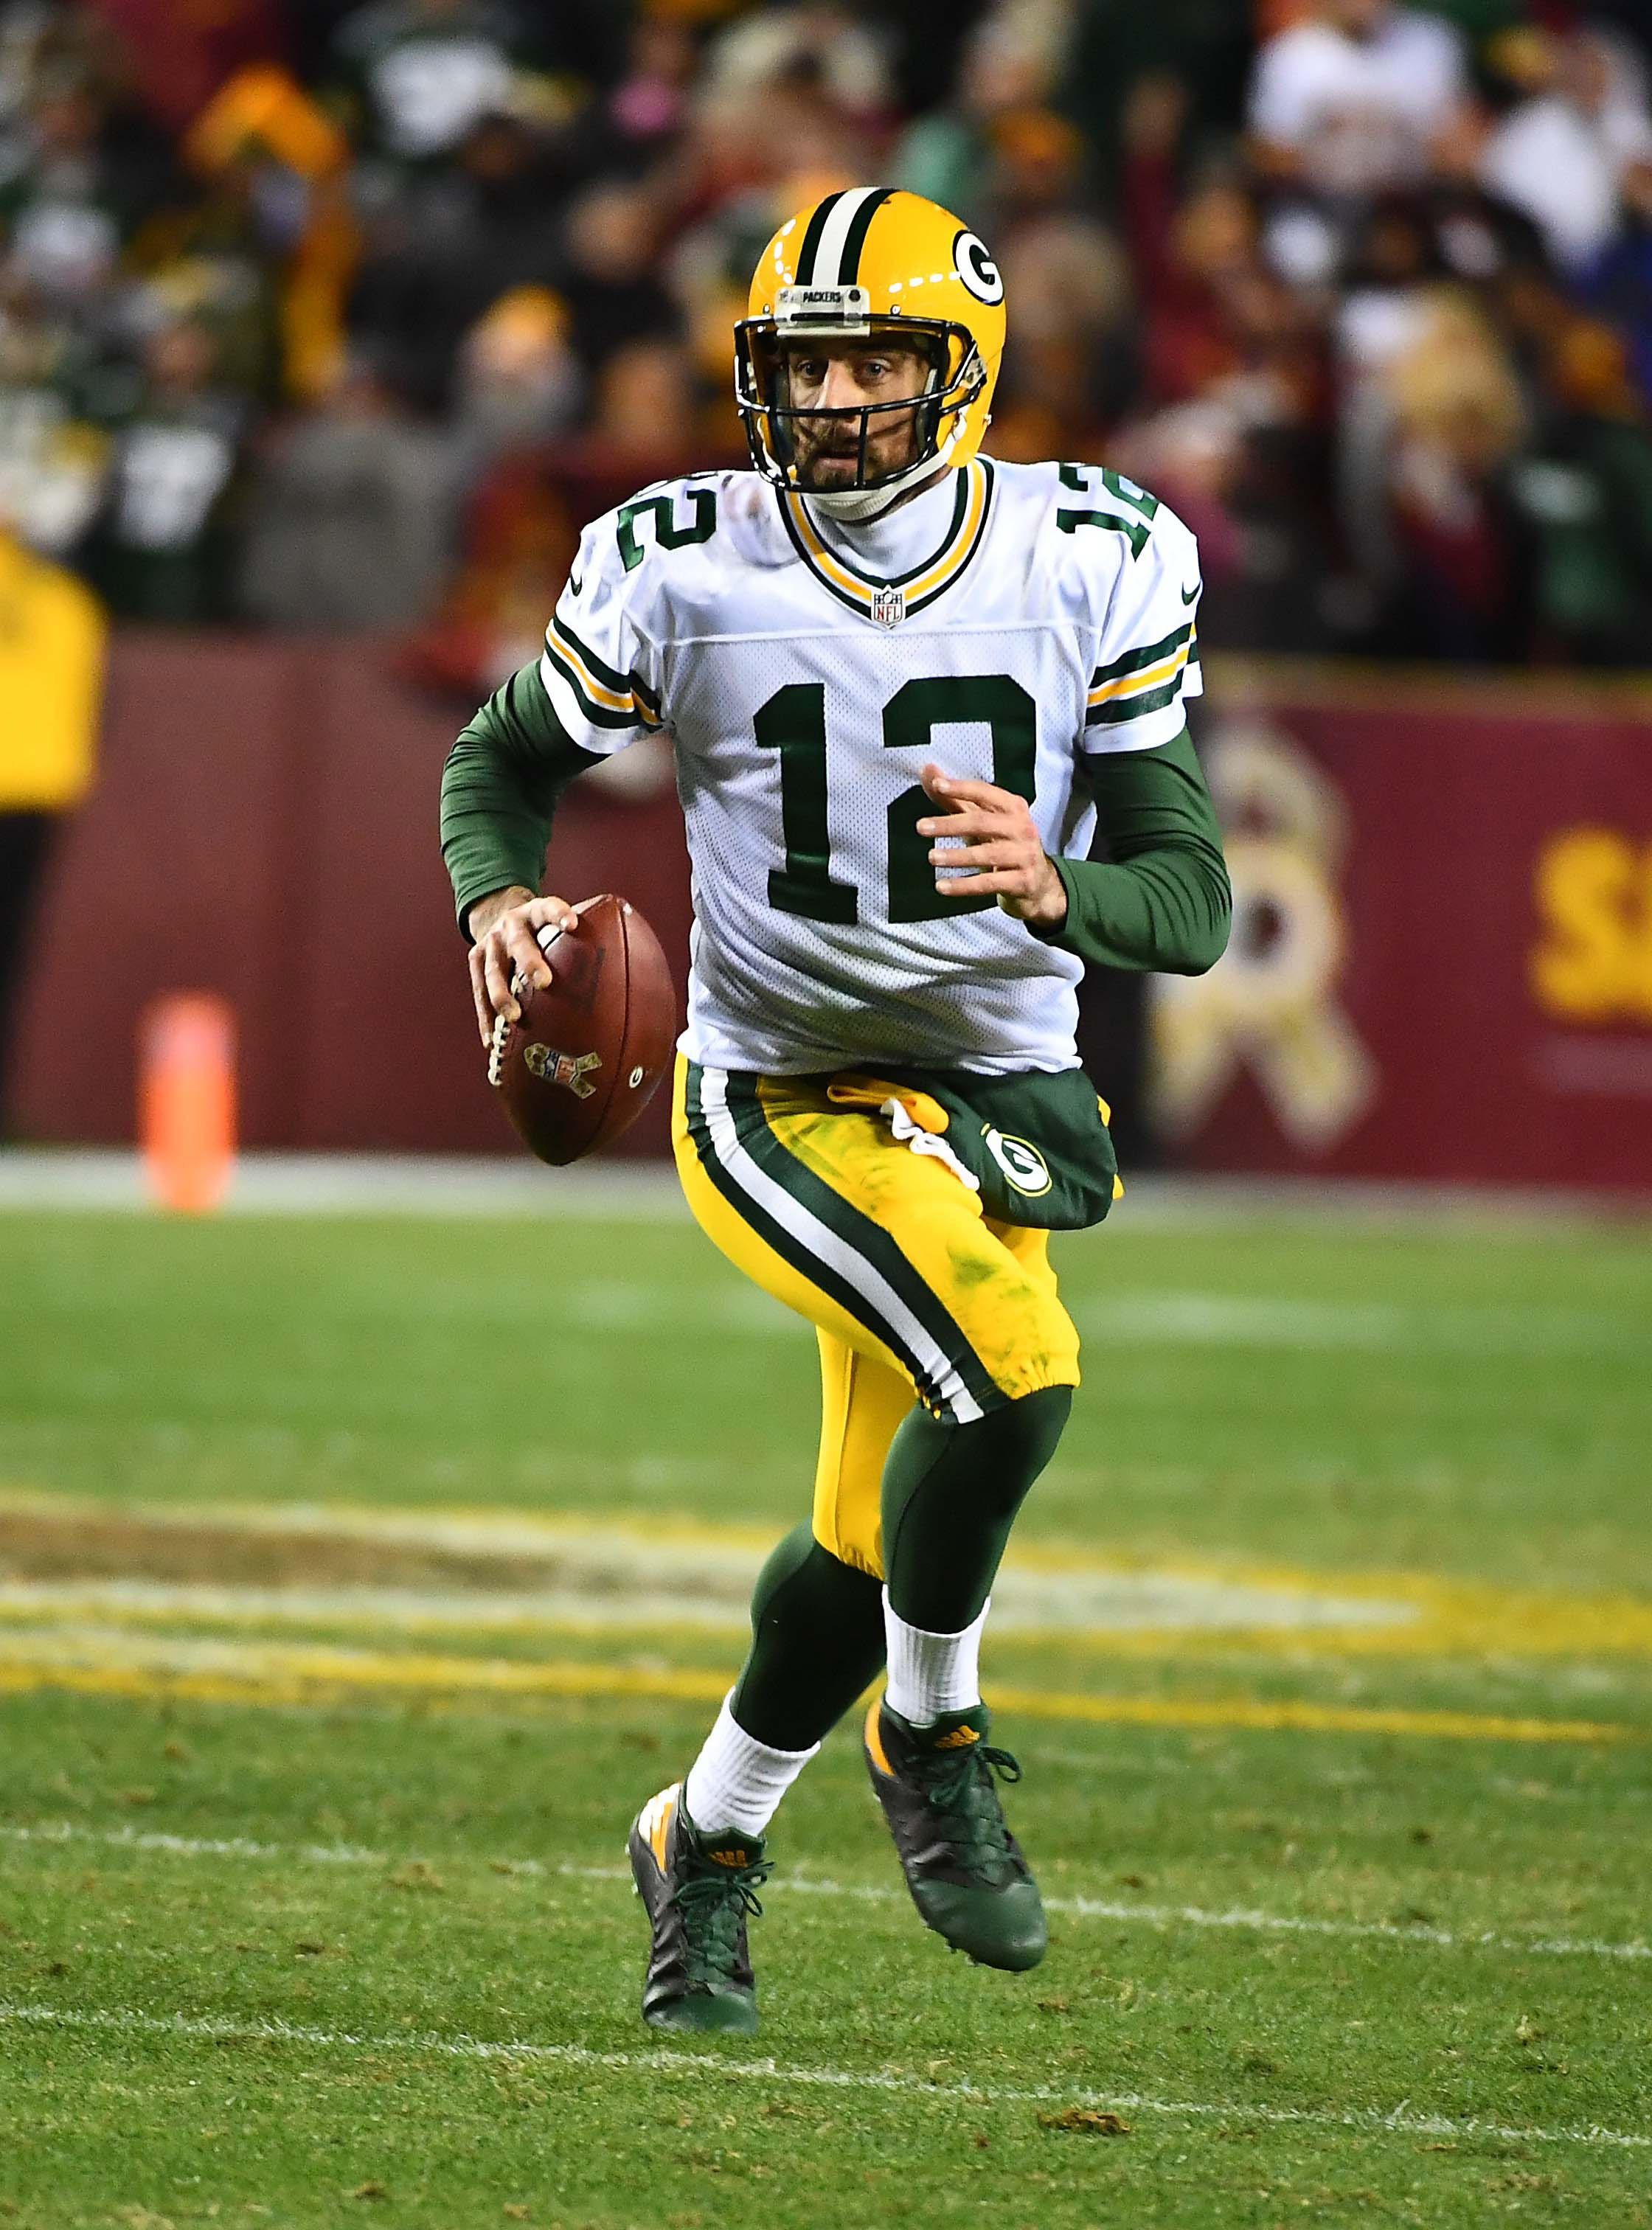 Packers preview: Aaron Rodgers and Co. primed for fresh playoff charge